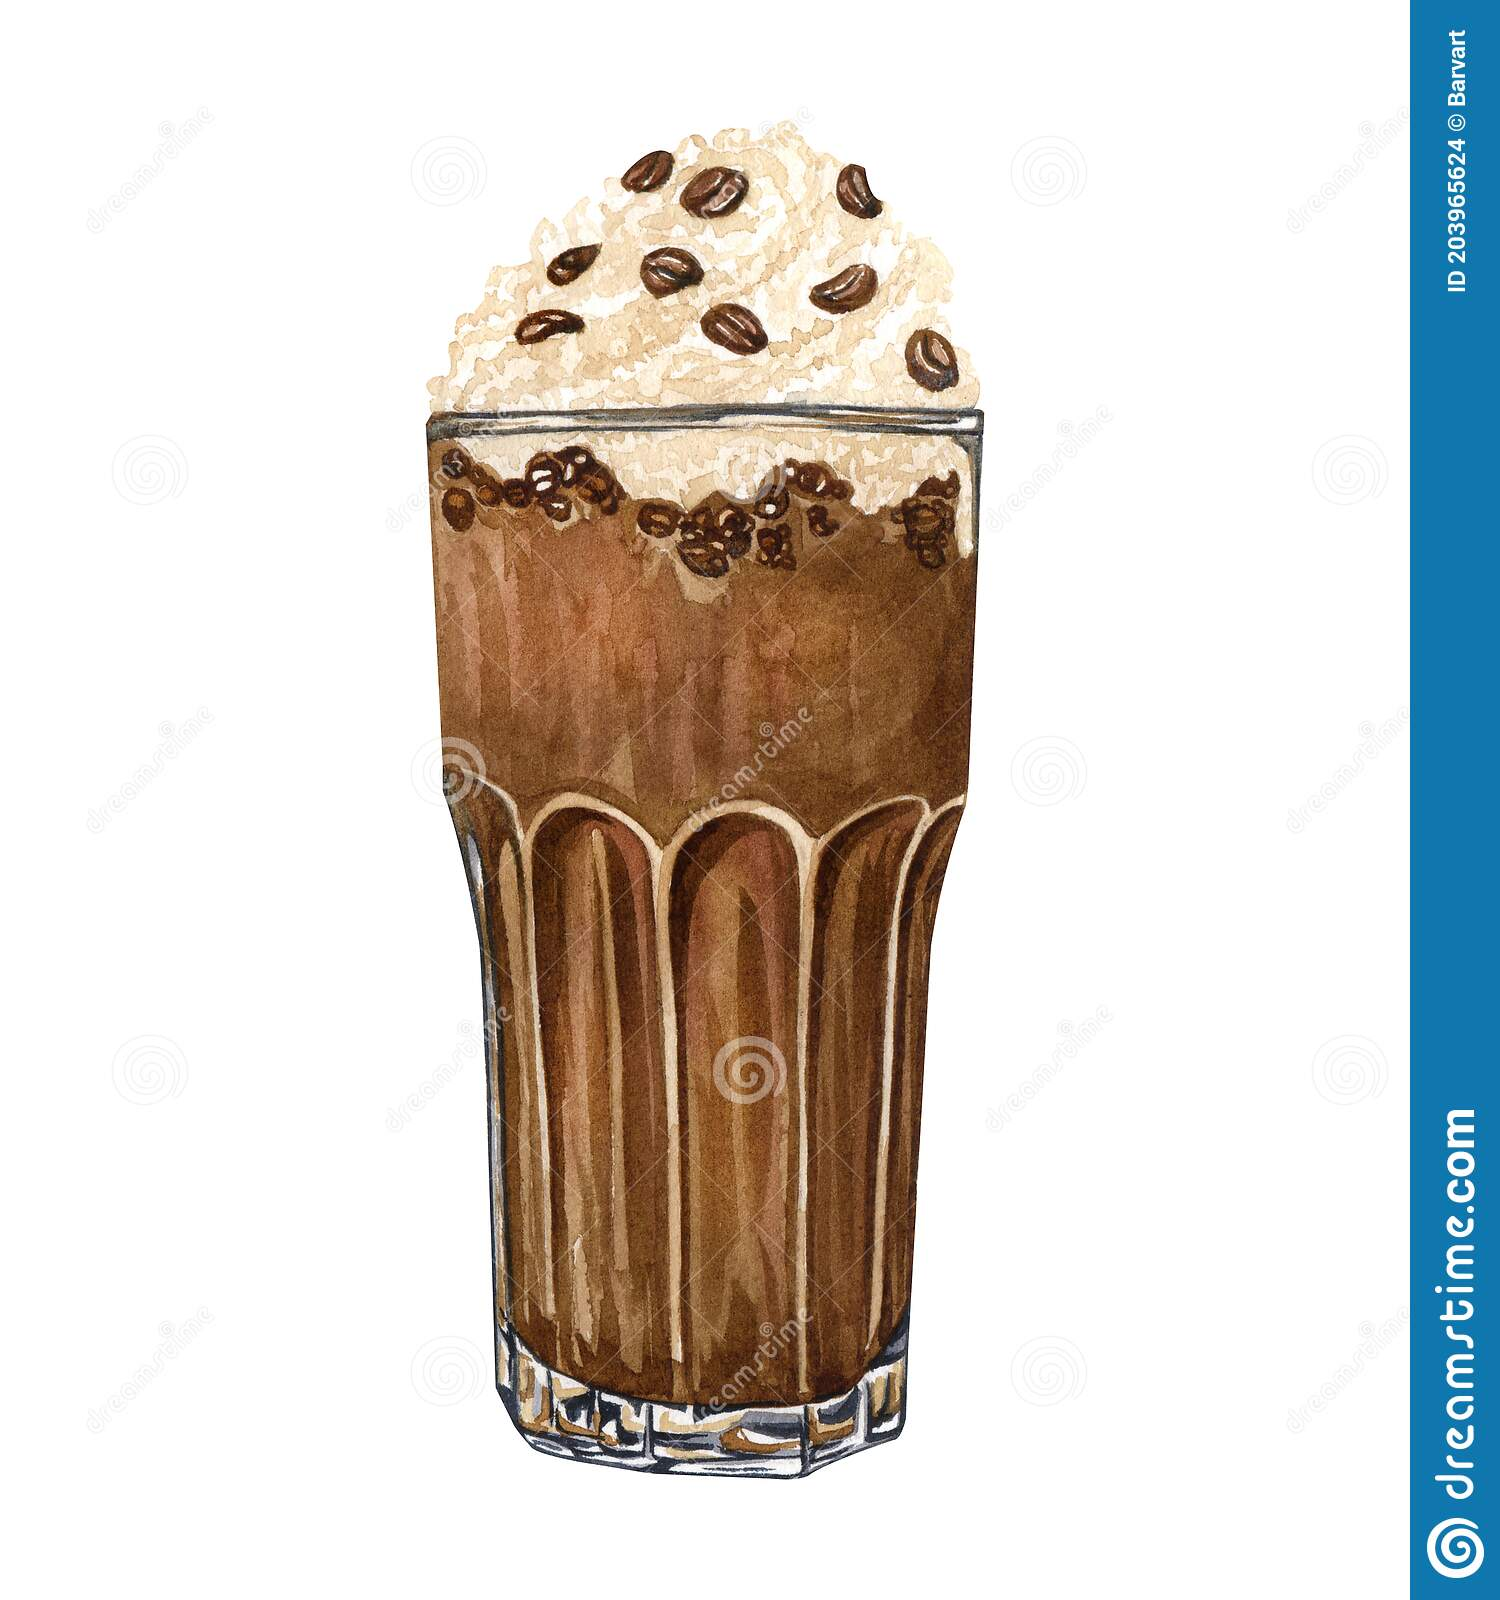 105 Frappe Illustration Photos Free Royalty Free Stock Photos From Dreamstime